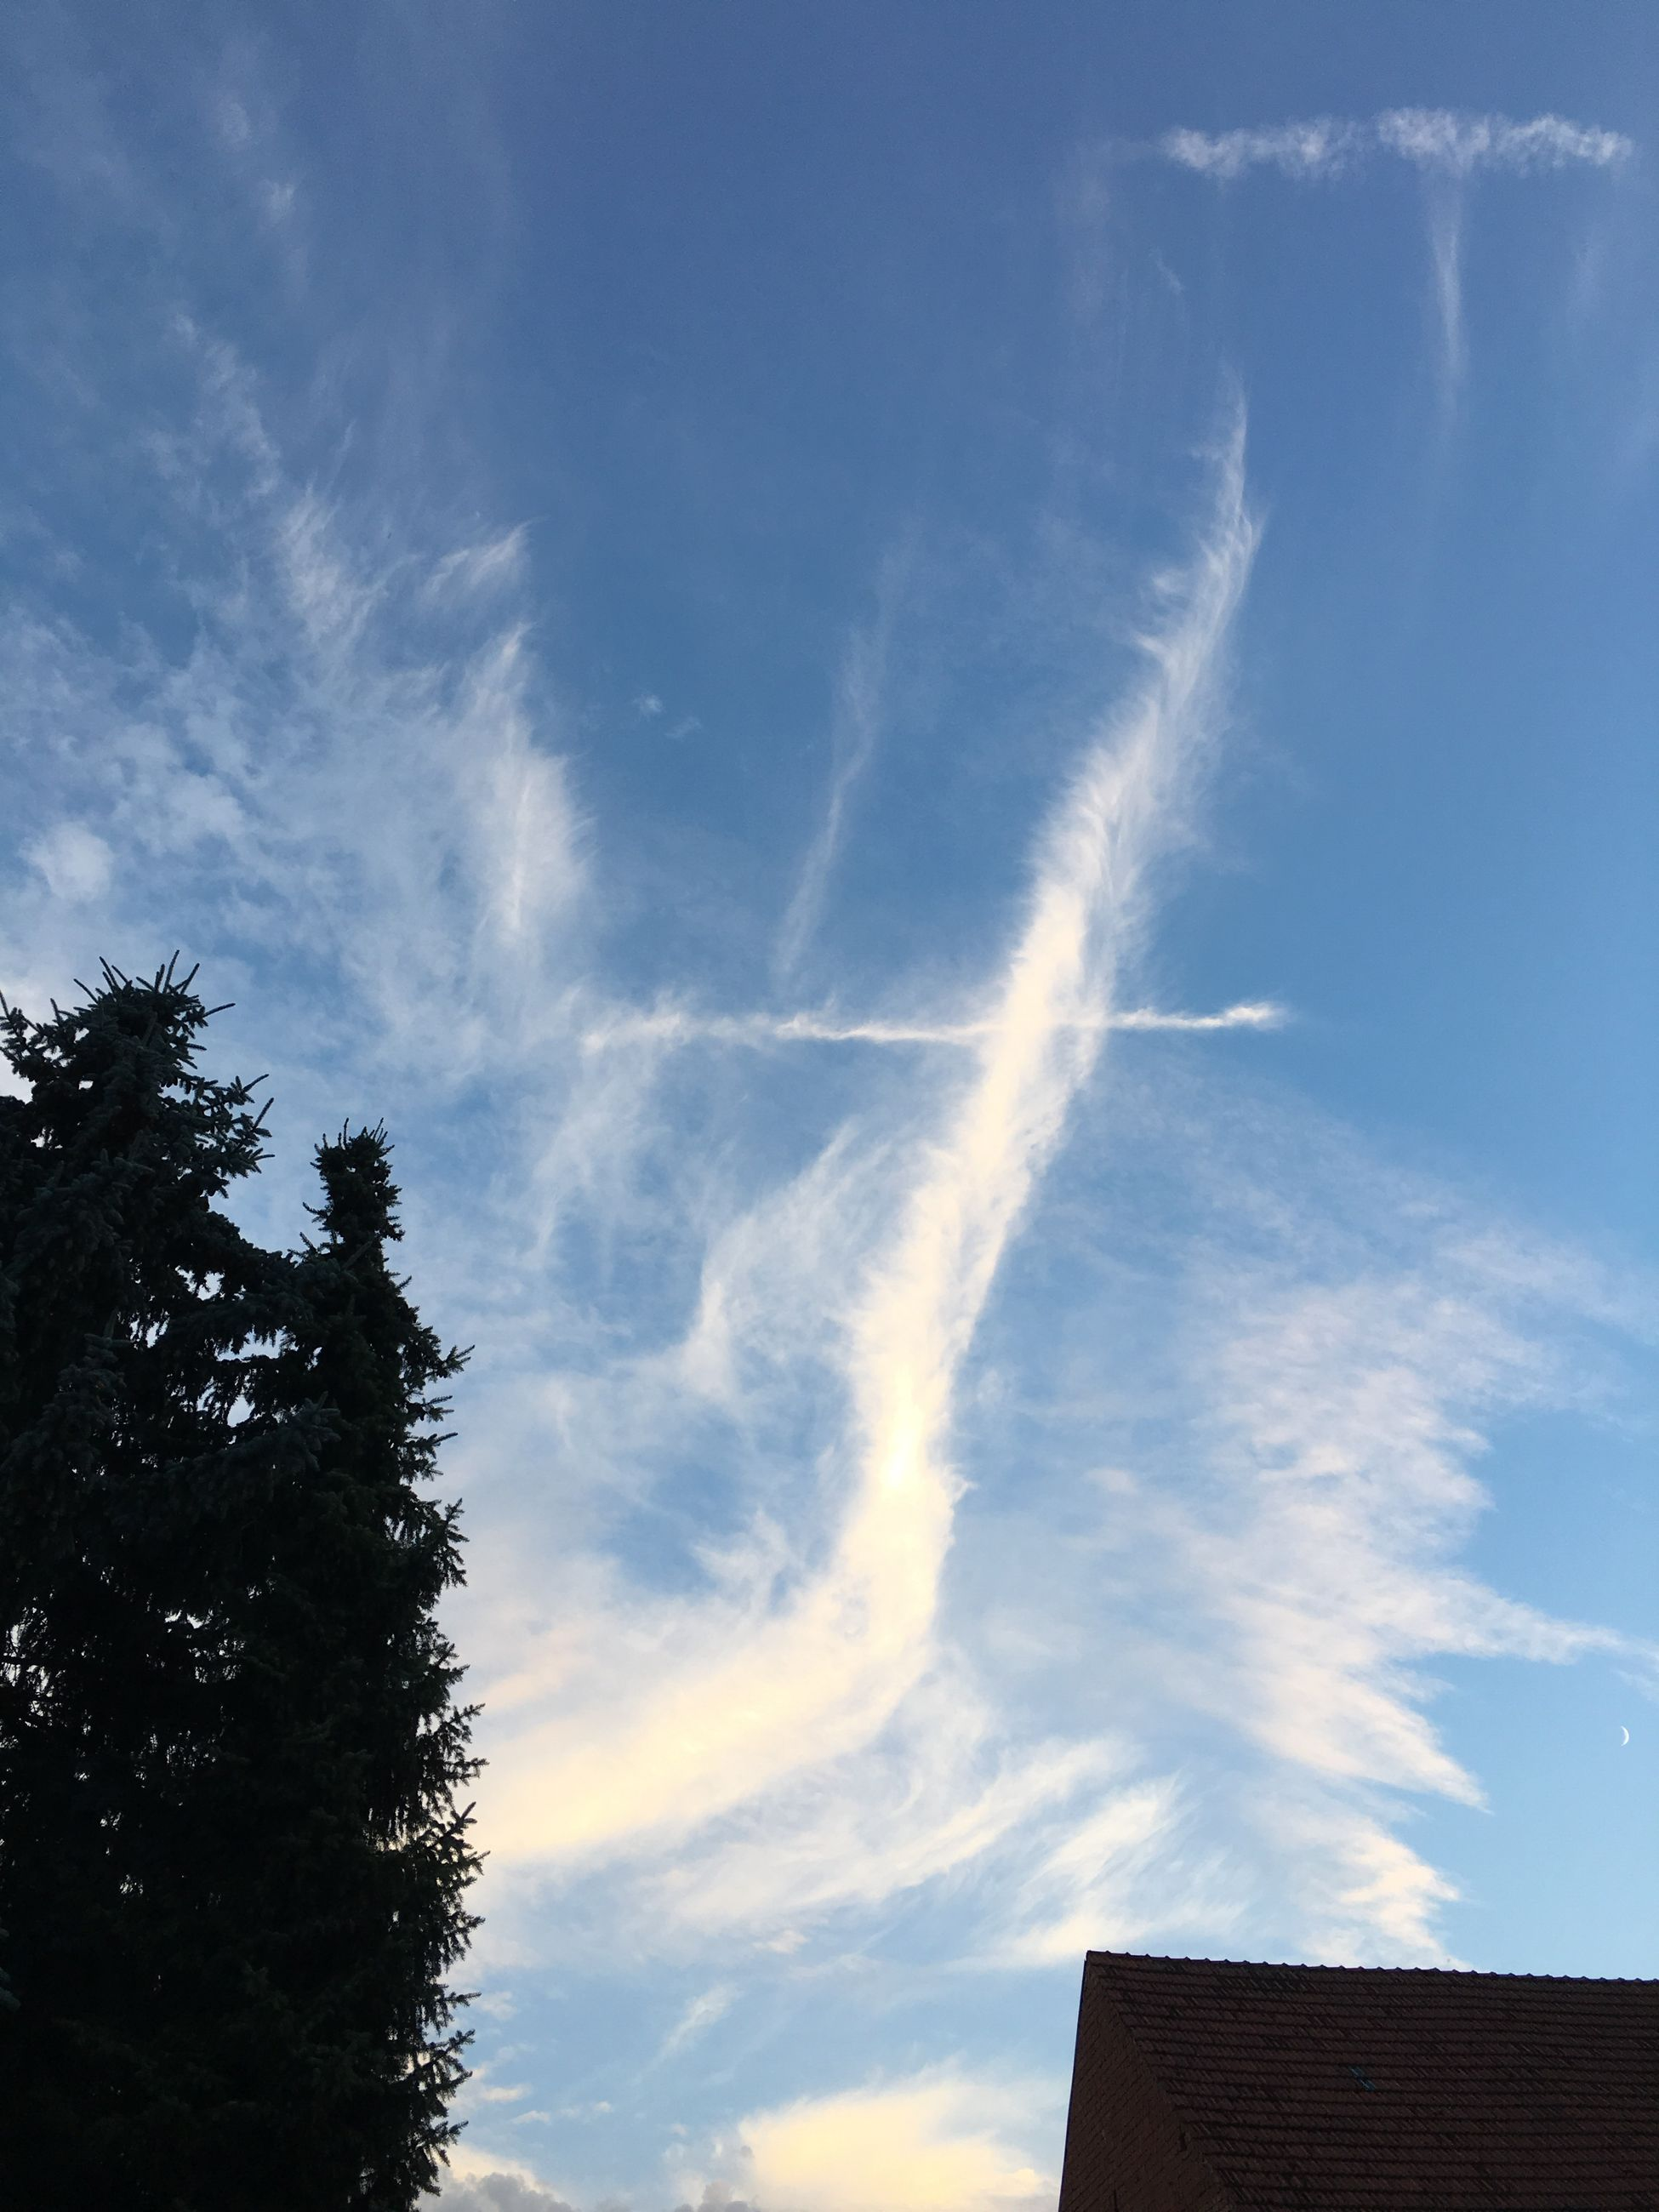 vapor trail, sky, contrail, scenics, nature, low angle view, beauty in nature, no people, outdoors, tree, day